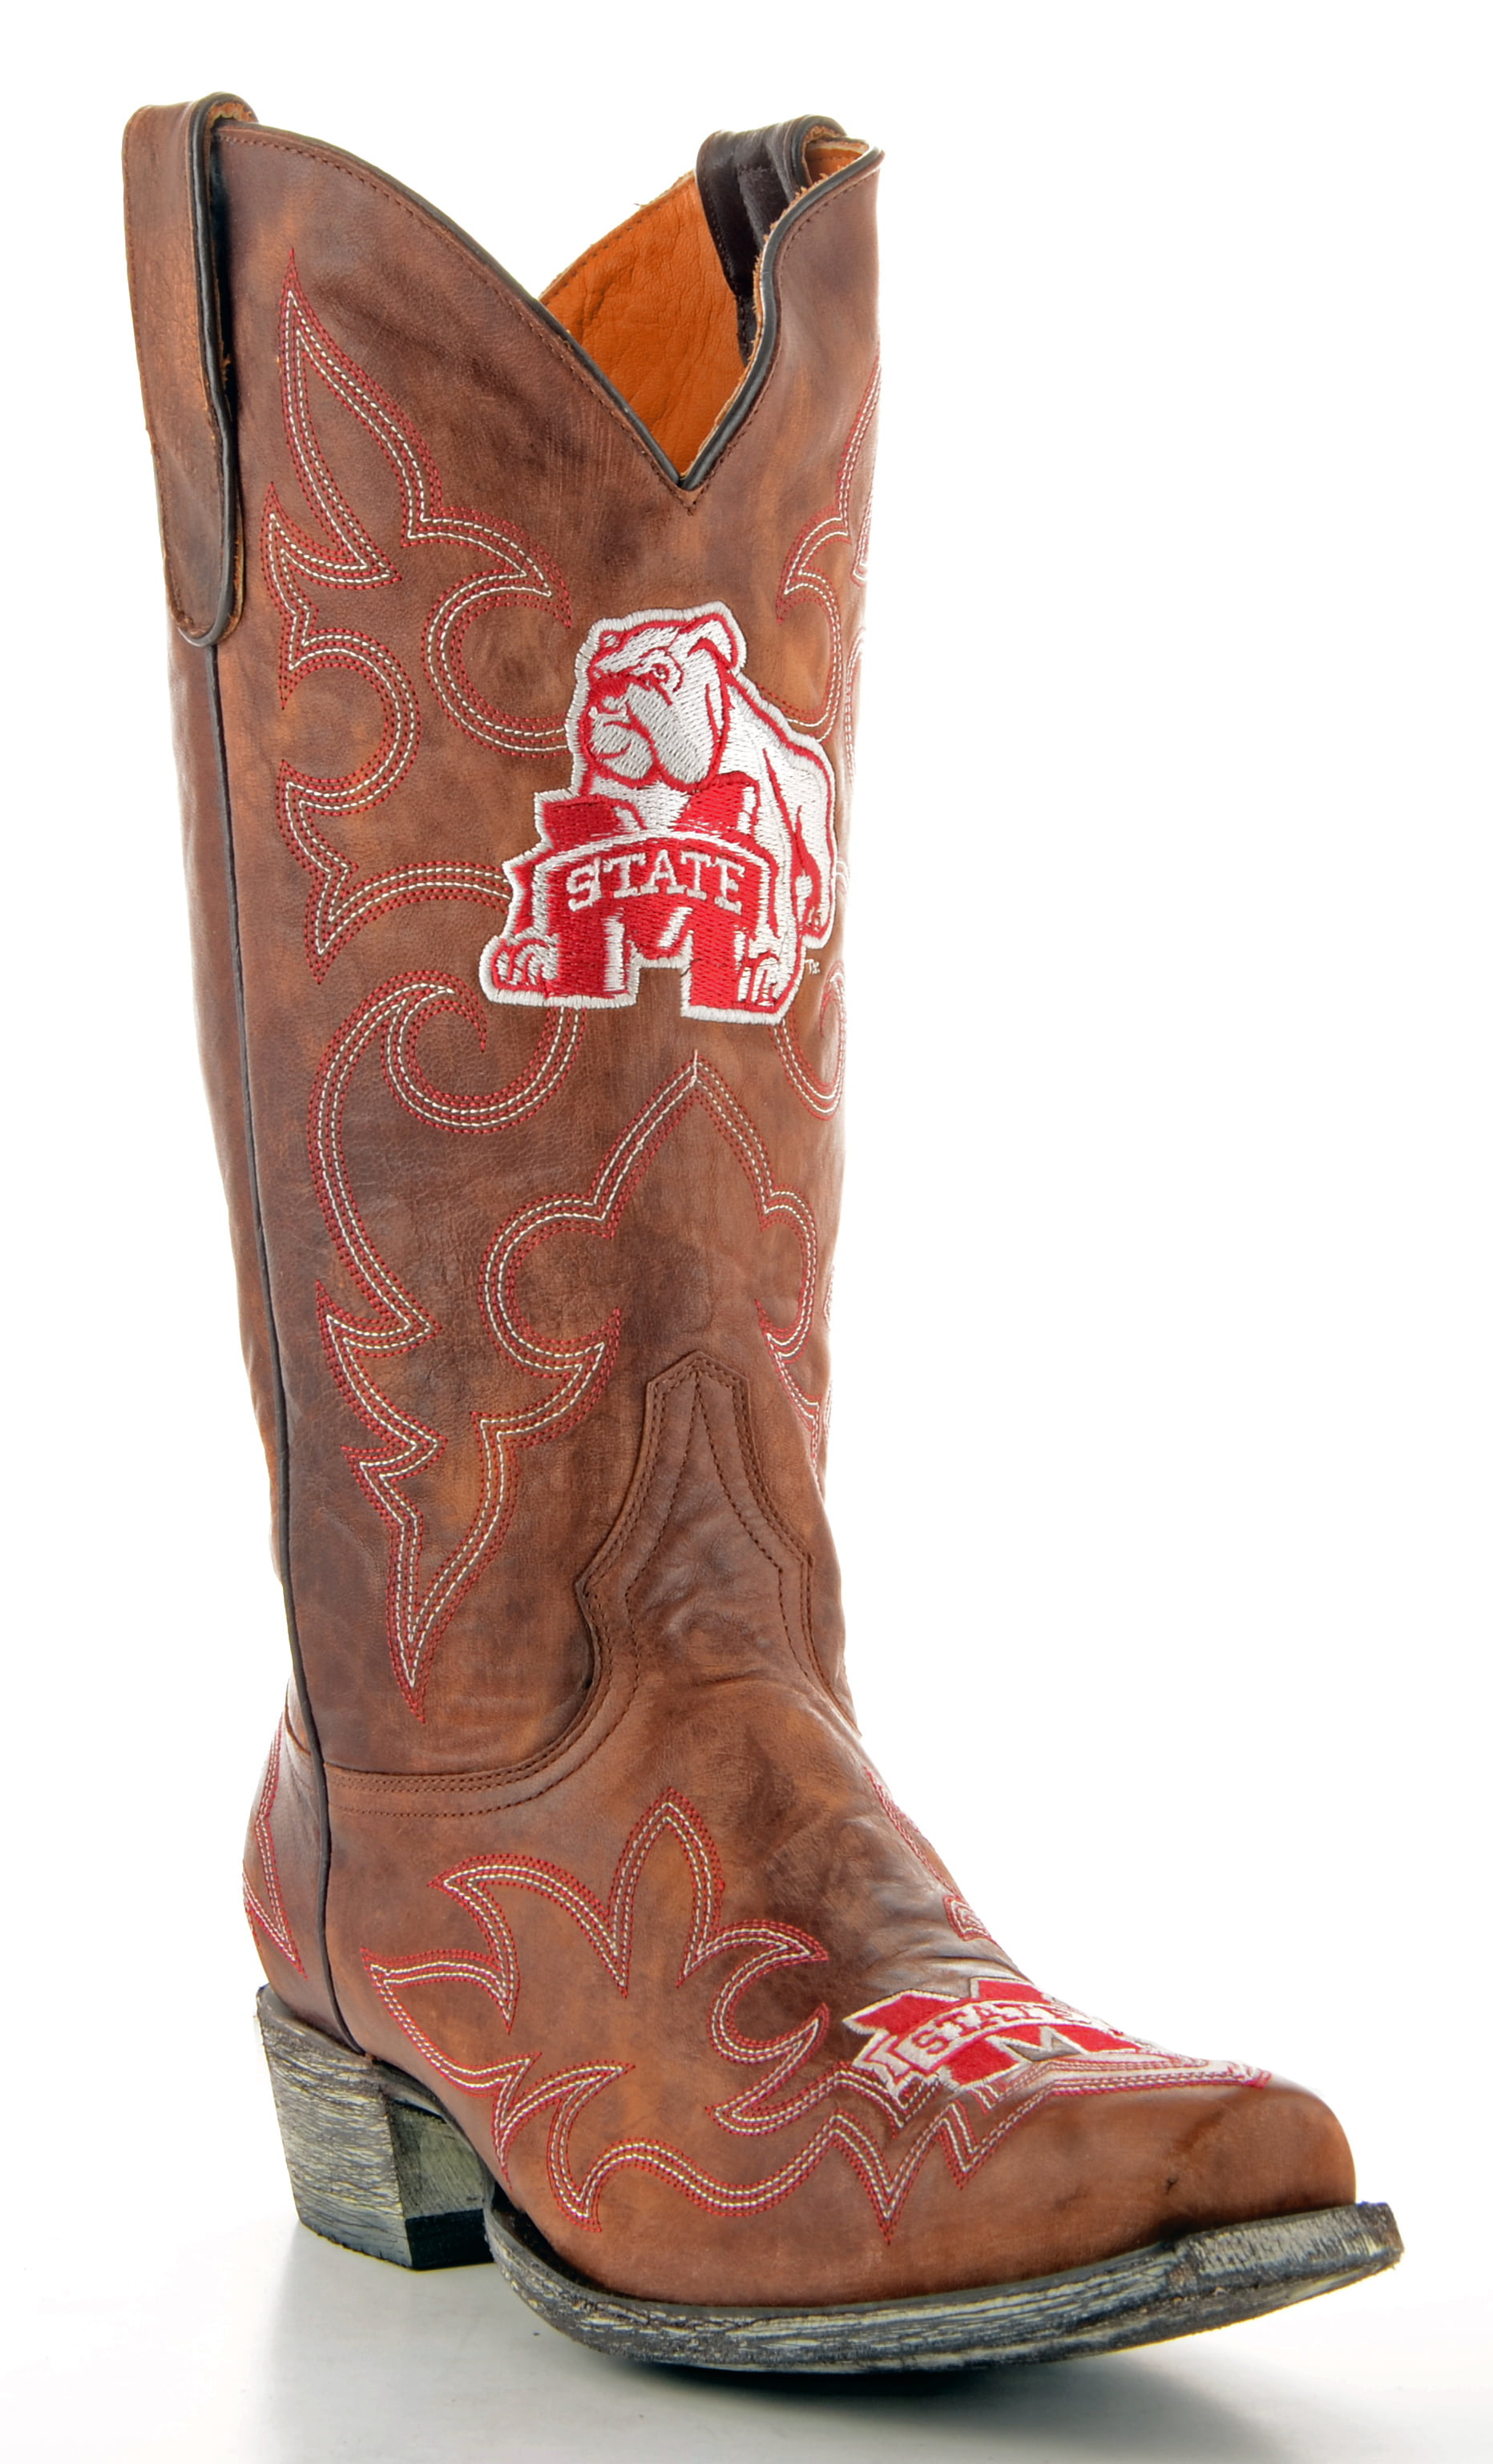 Gameday Boots Mens Leather Mississippi State Cowboy Boots by GameDay Boots